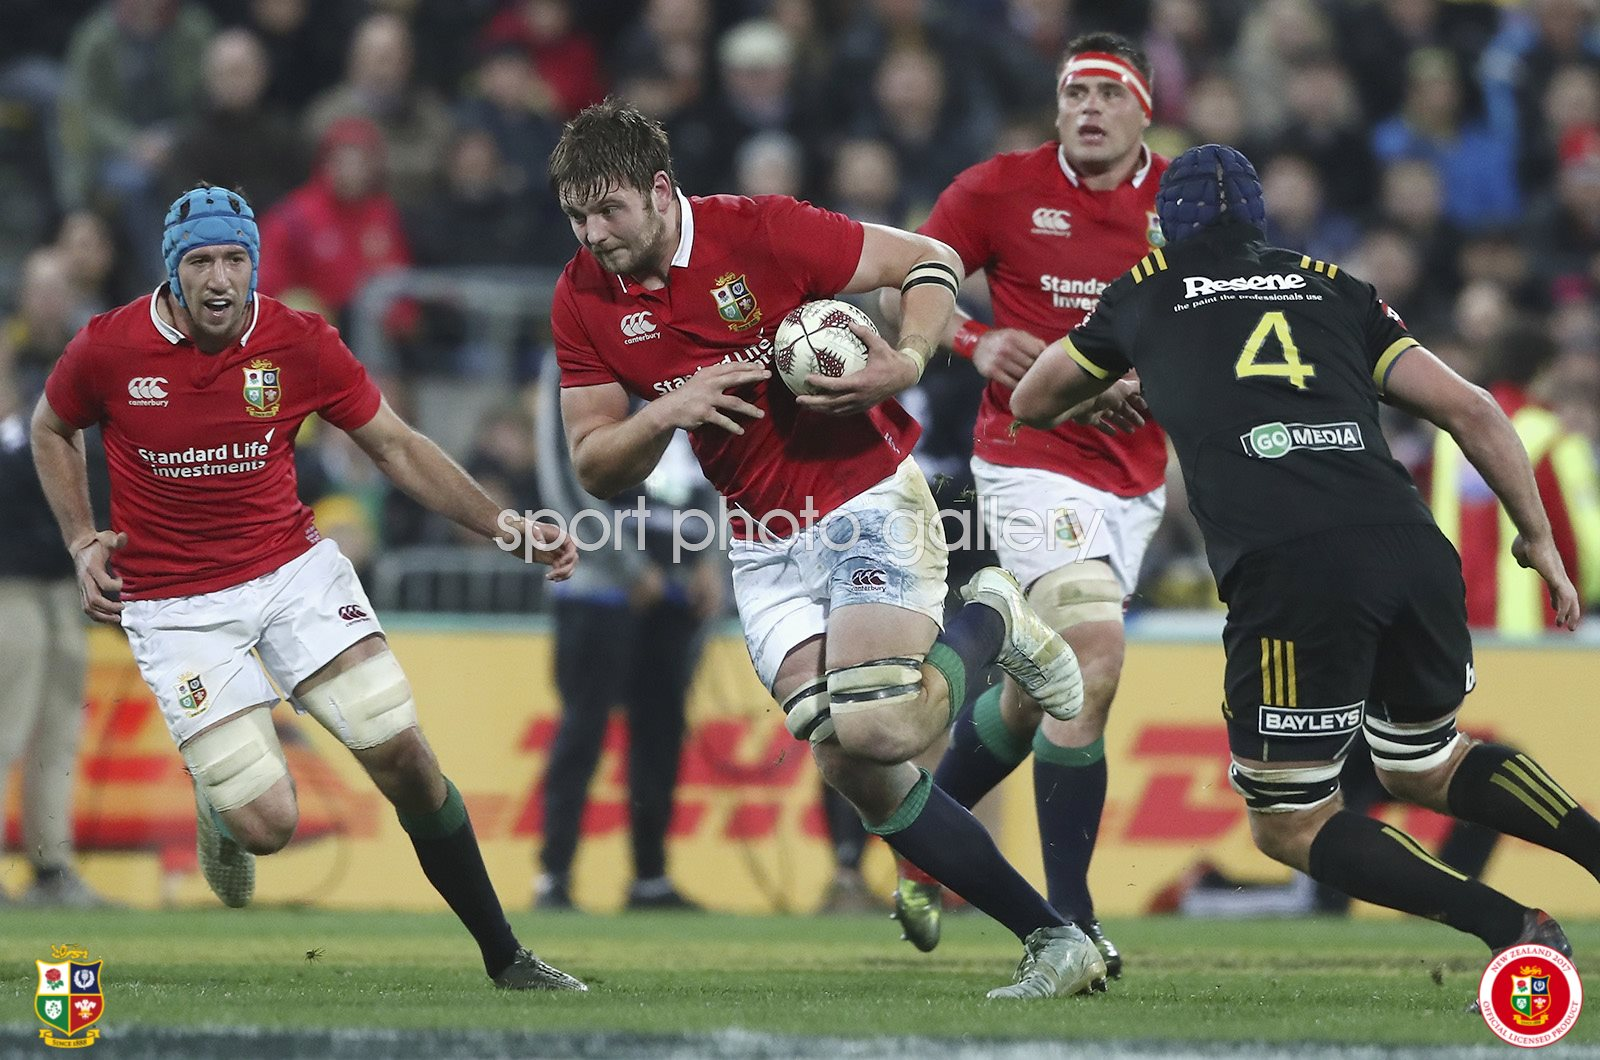 Iain Henderson British & Irish Lions v Hurricanes Wellington 2017